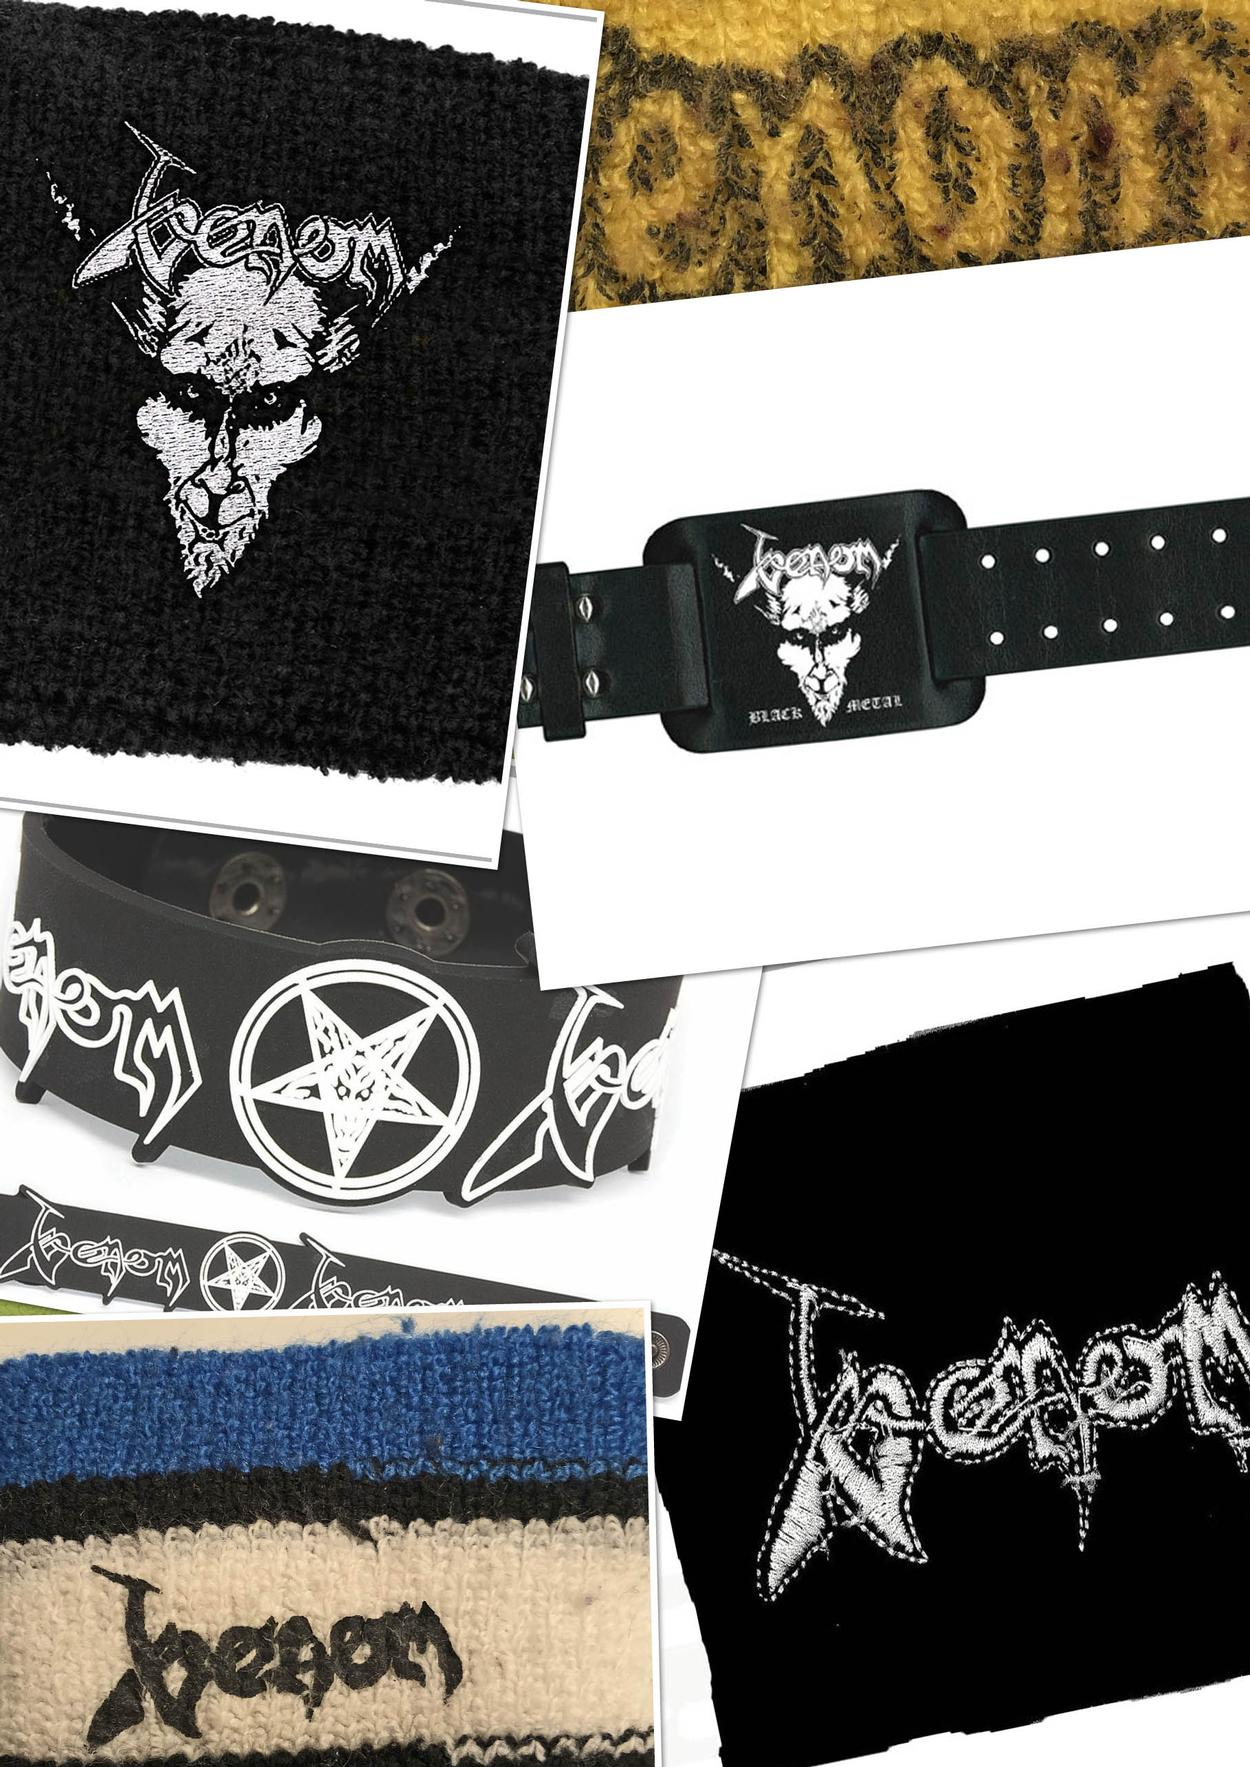 venom black metal collection homepage wristbands